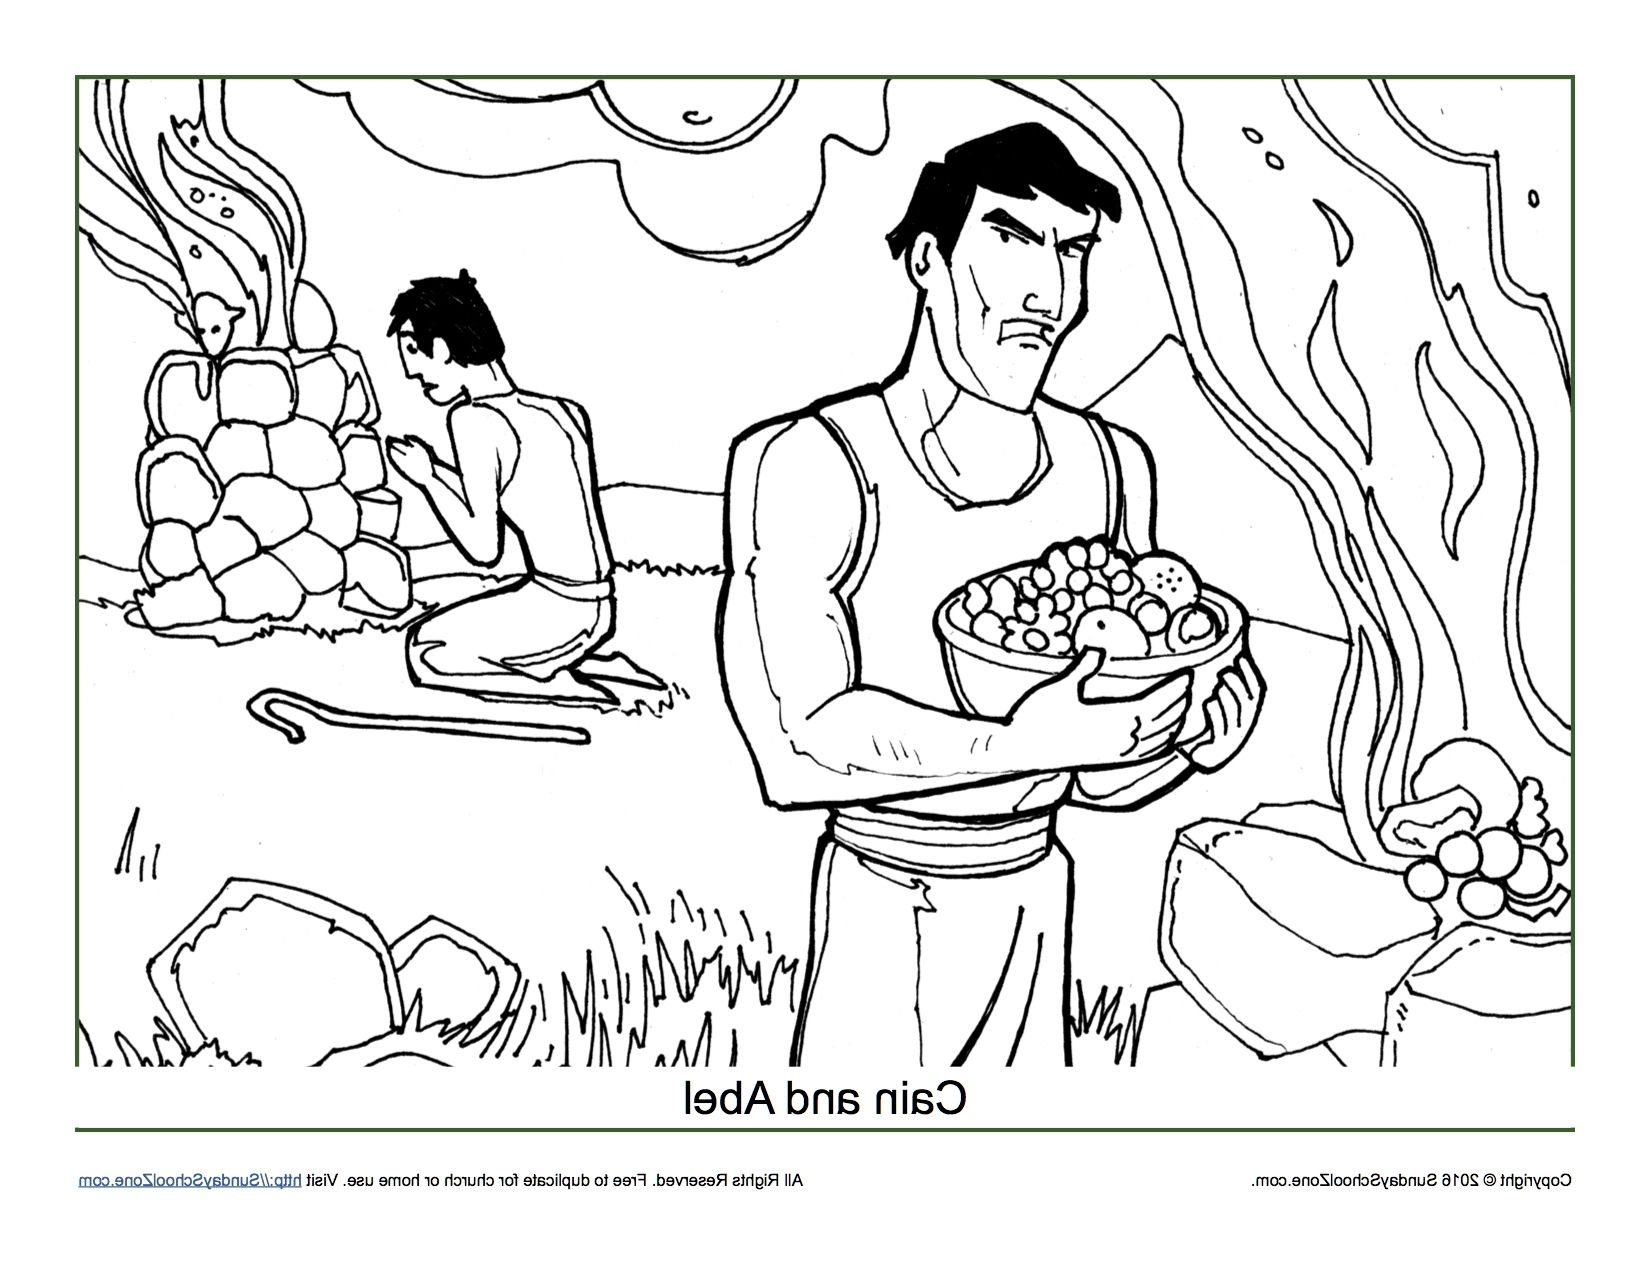 Cain And Abel Coloring Pages Cain And Abel Bible Coloring Pages Bible Coloring